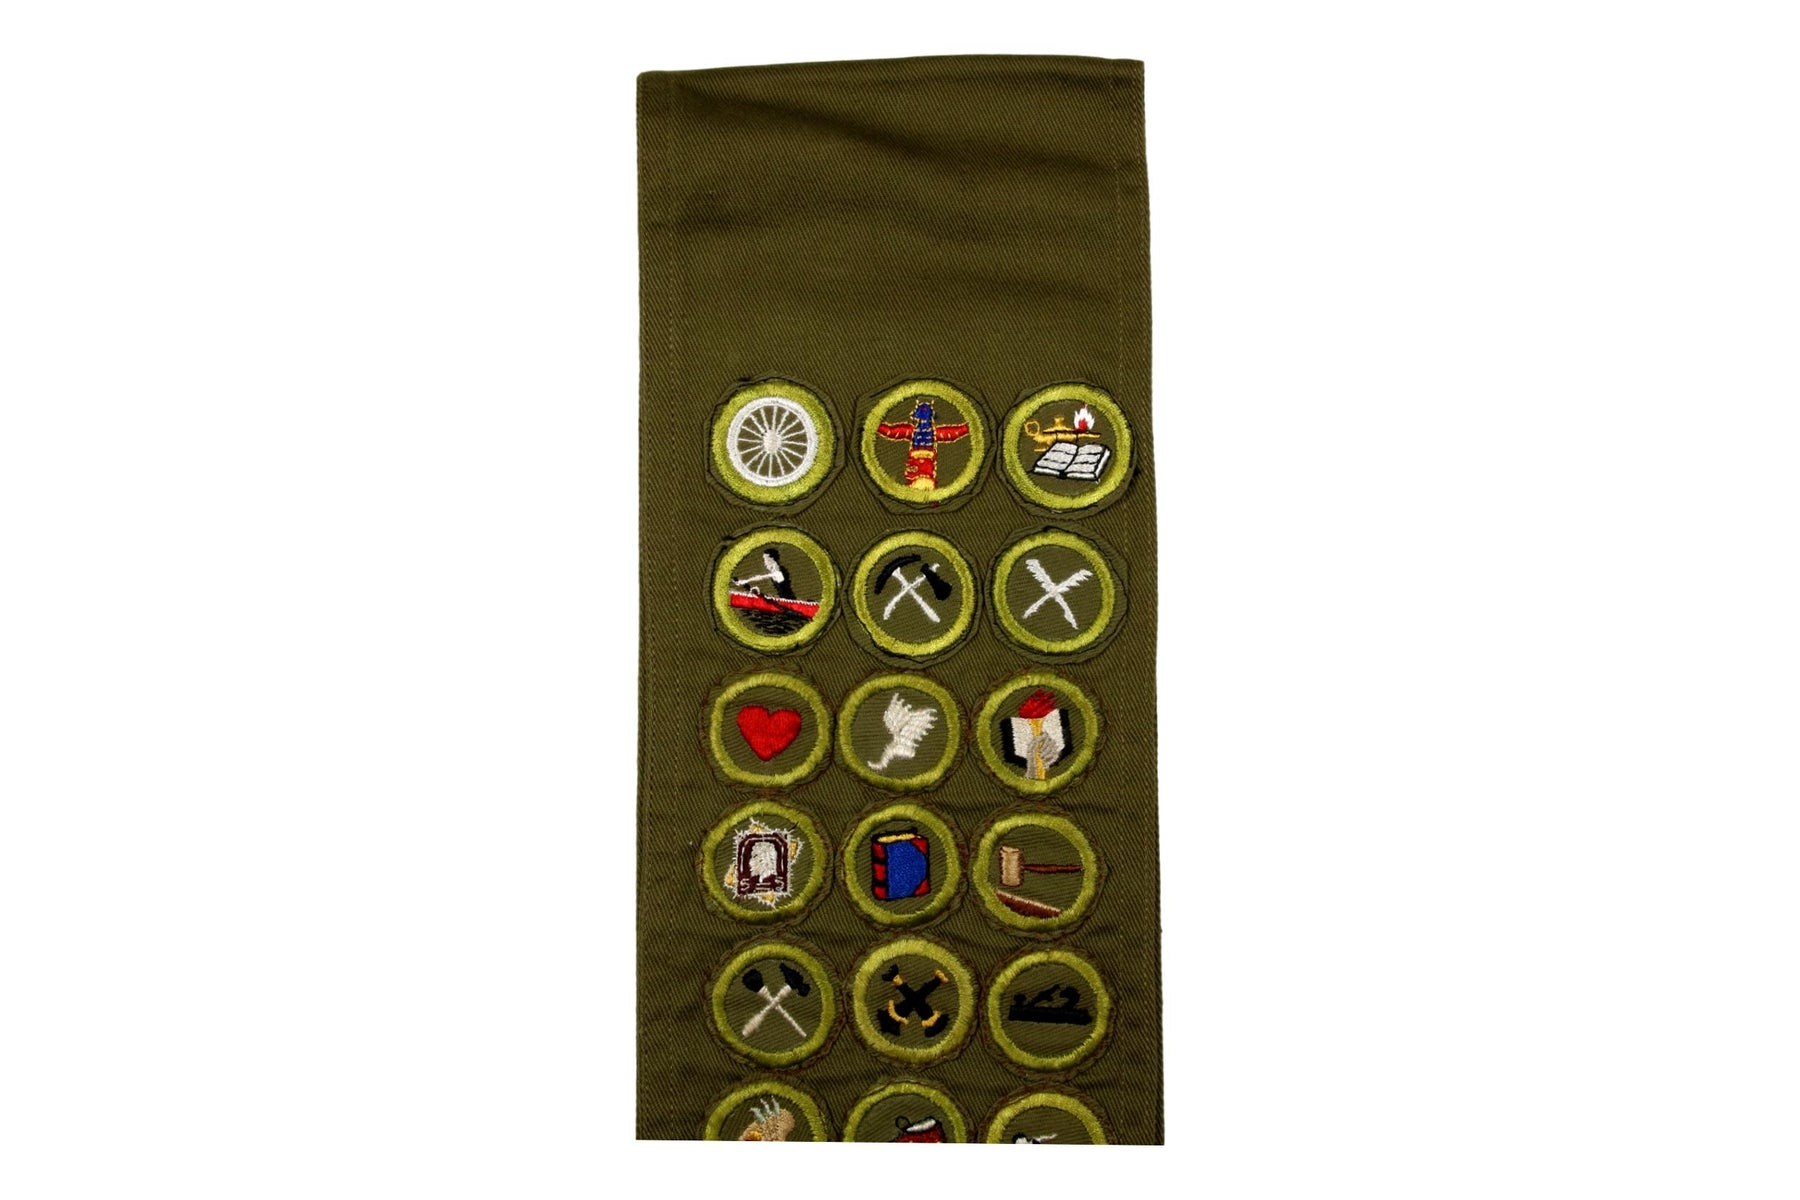 Merit Badge Sash 1950s with 36 Kahki Crimped Merit Badges on 1960s Khaki